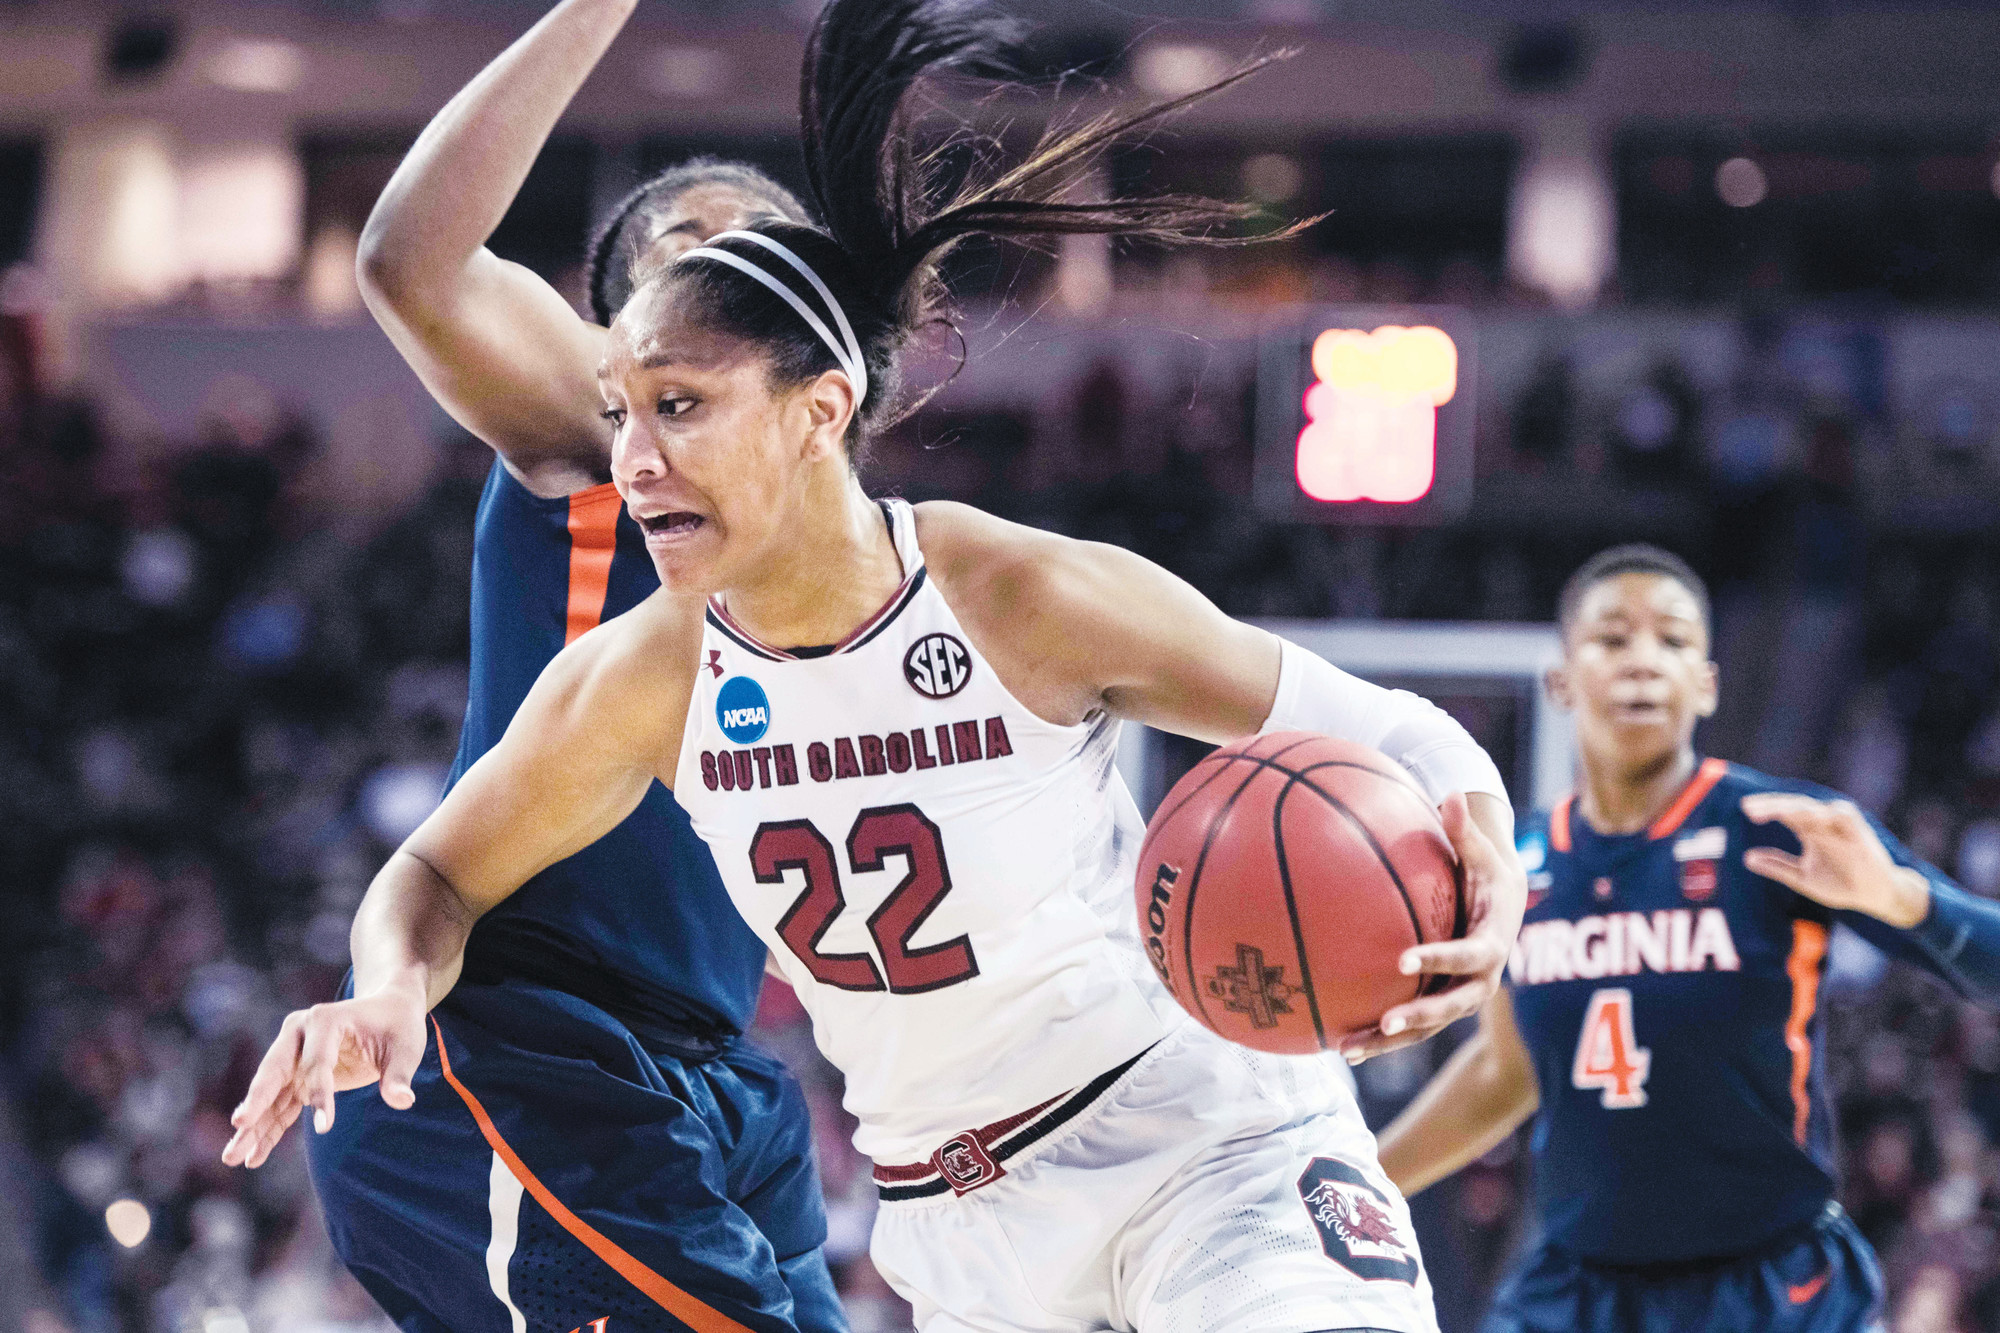 South Carolina forward A'ja Wilson (22) drives to the hoop against Virginia's Jocelyn Willoughby during the Gamecocks' 66-56 win on Sunday in the second round of the women's NCAA tournament in Columbia.